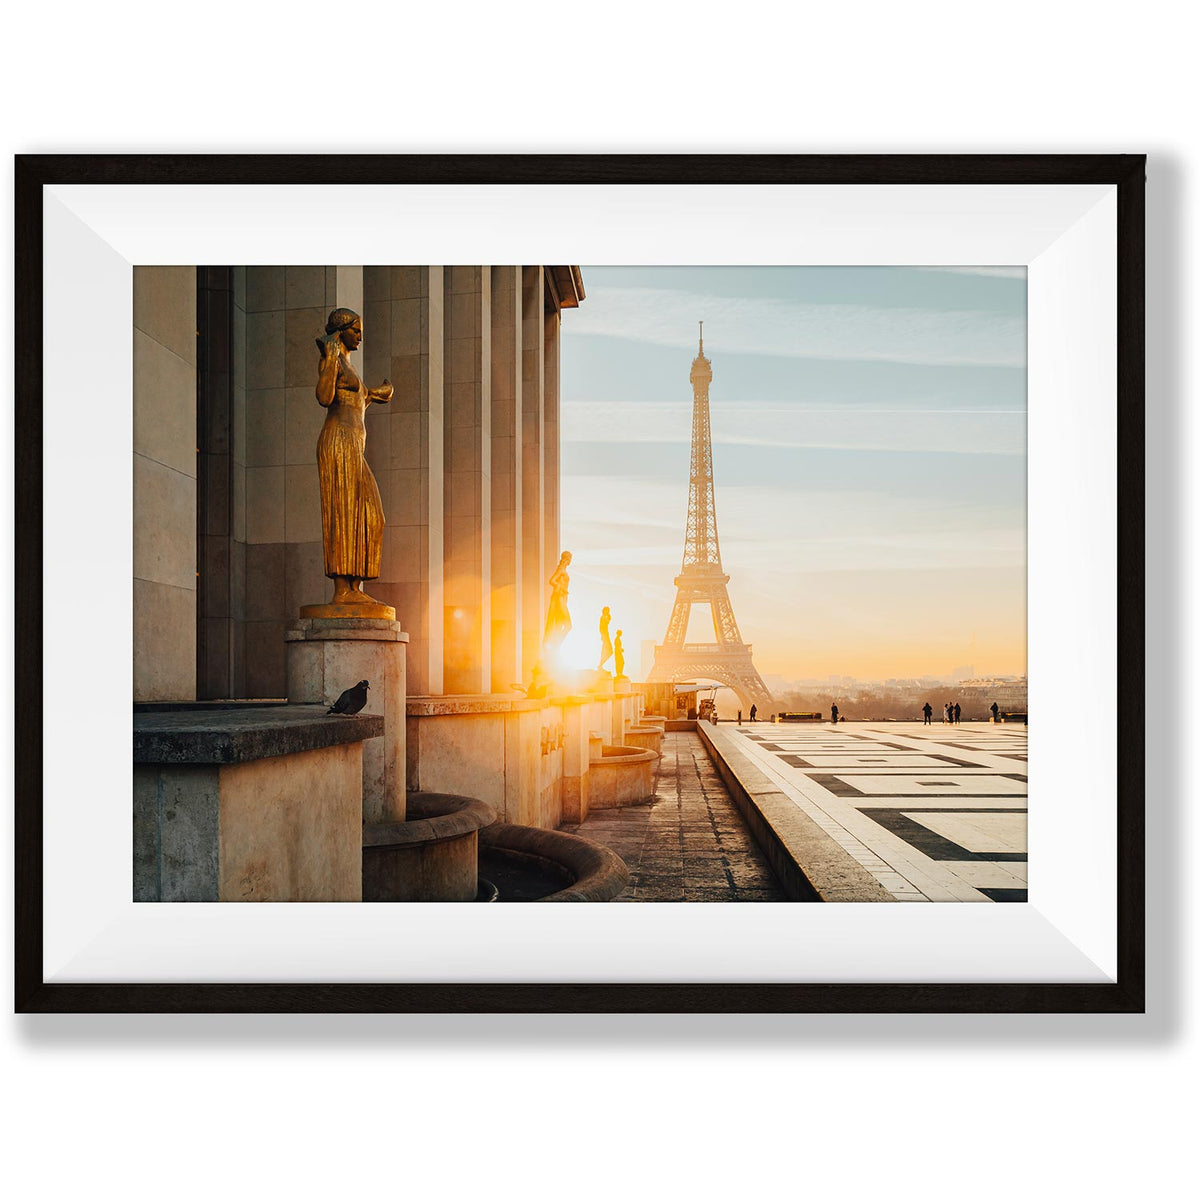 A morning in Paris - Trocadero